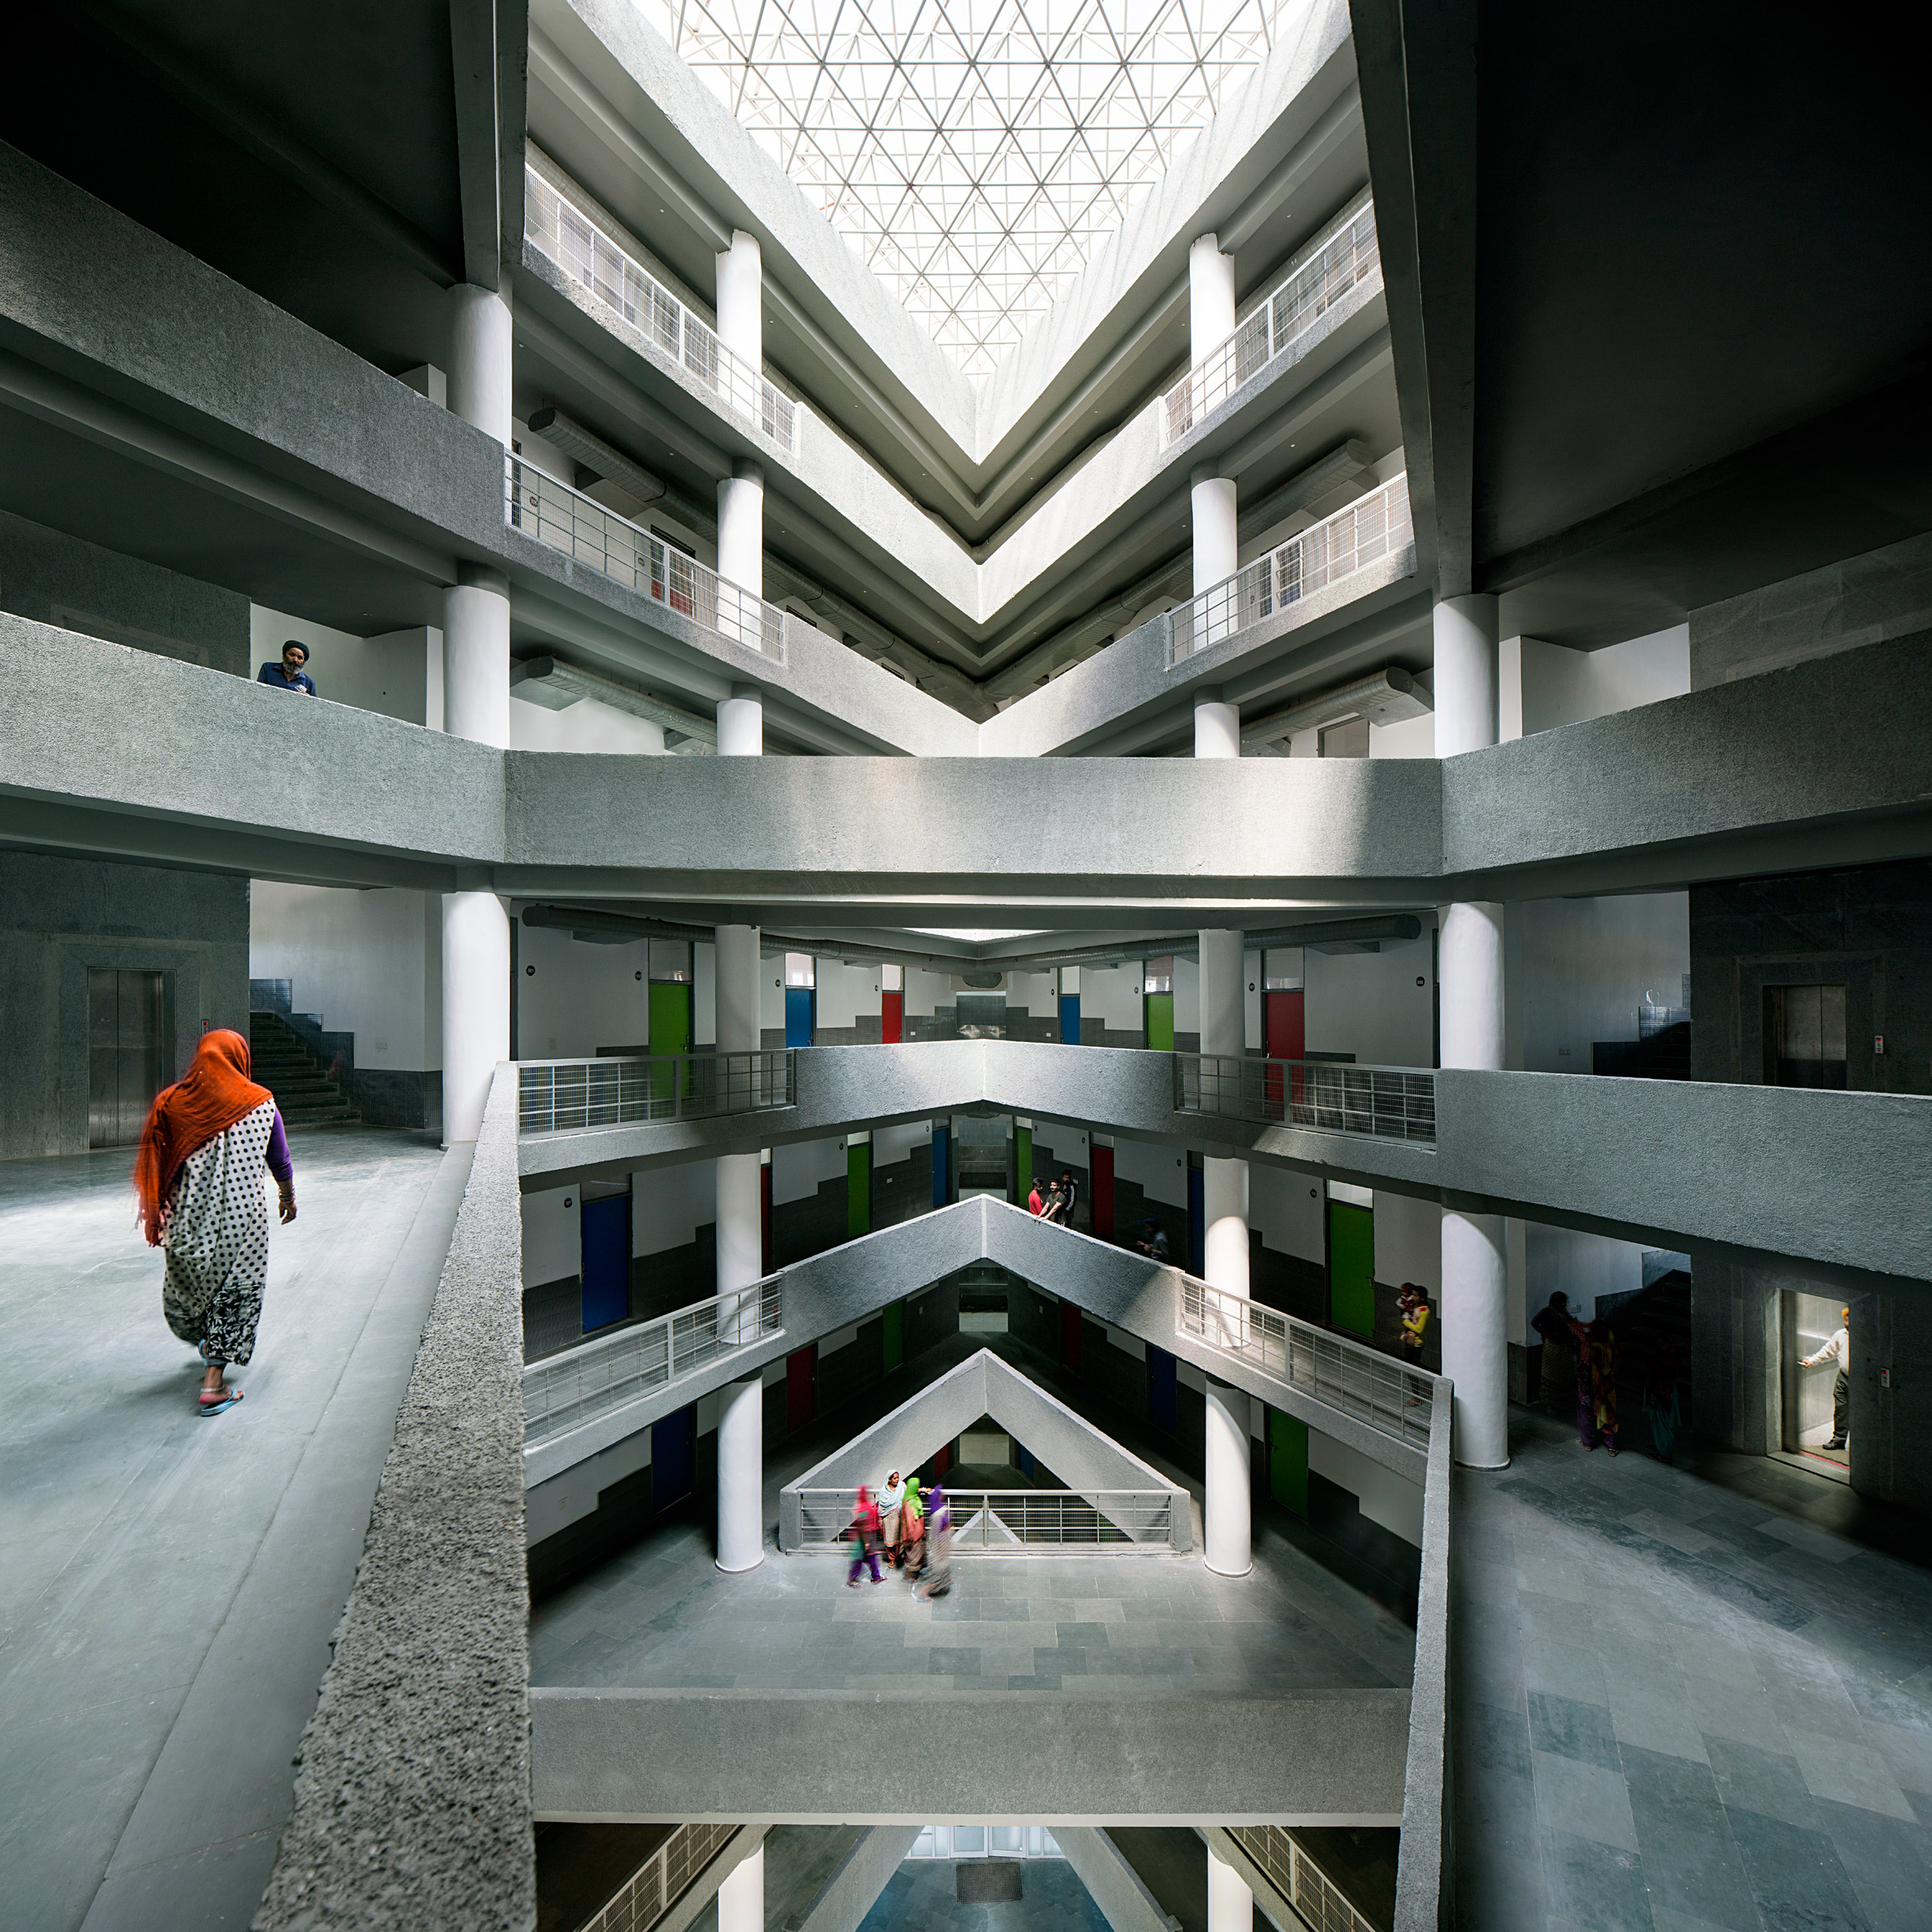 A multi-storey atrium with crisscrossing bridges